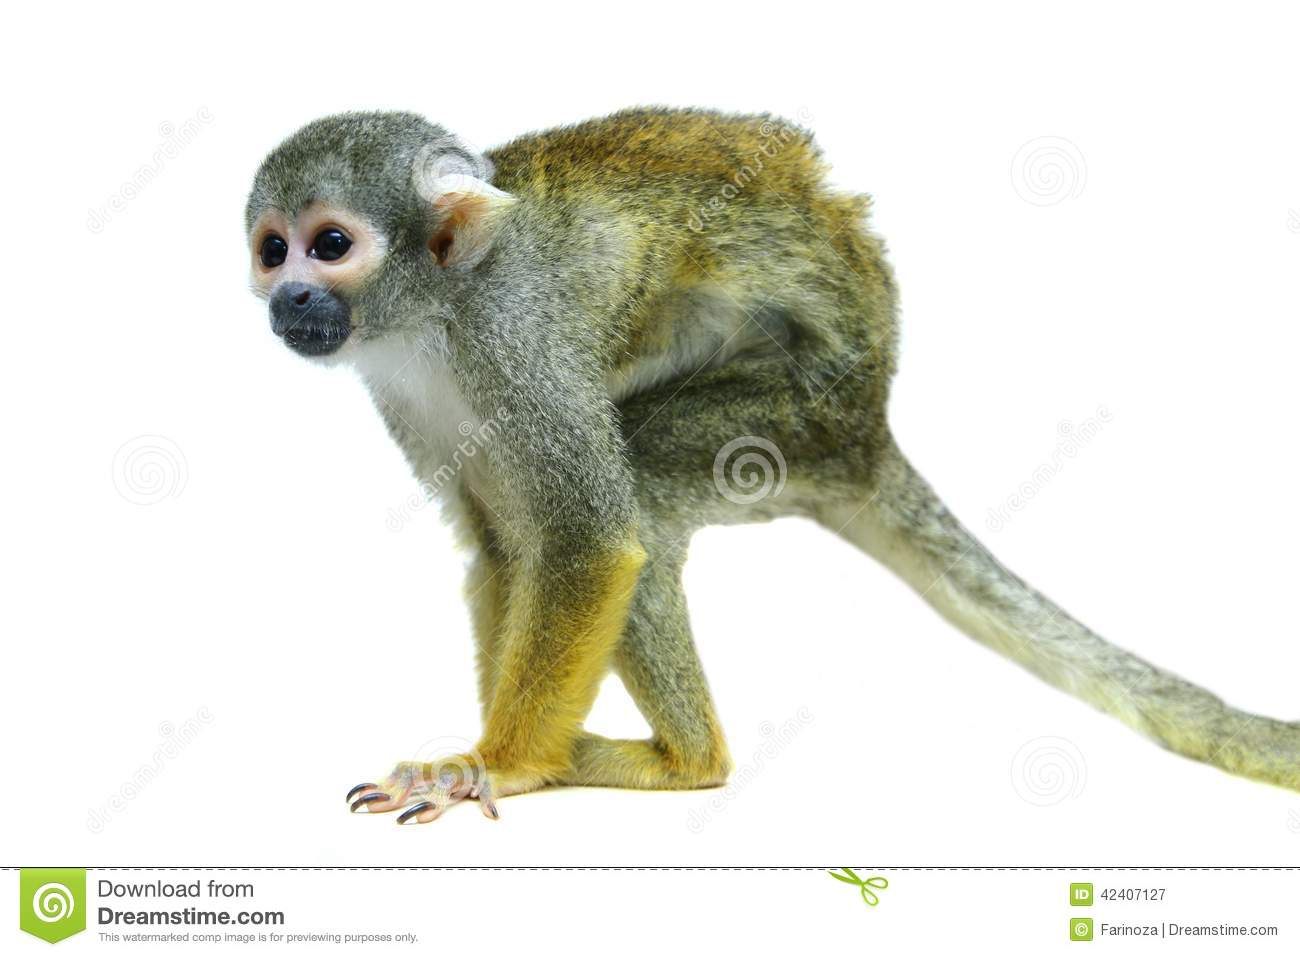 Squirrel Monkey clipart #18, Download drawings